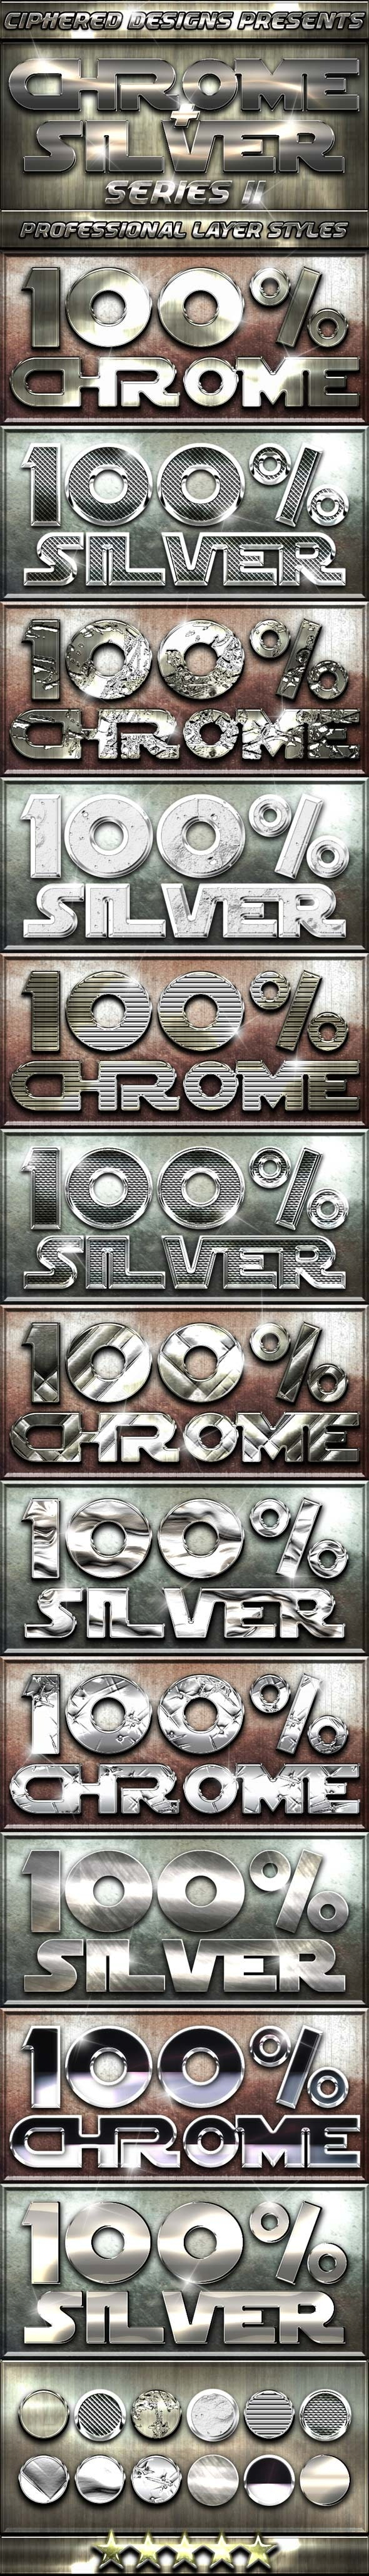 Chrome & Silver Series II - Professional Styles - Text Effects Styles